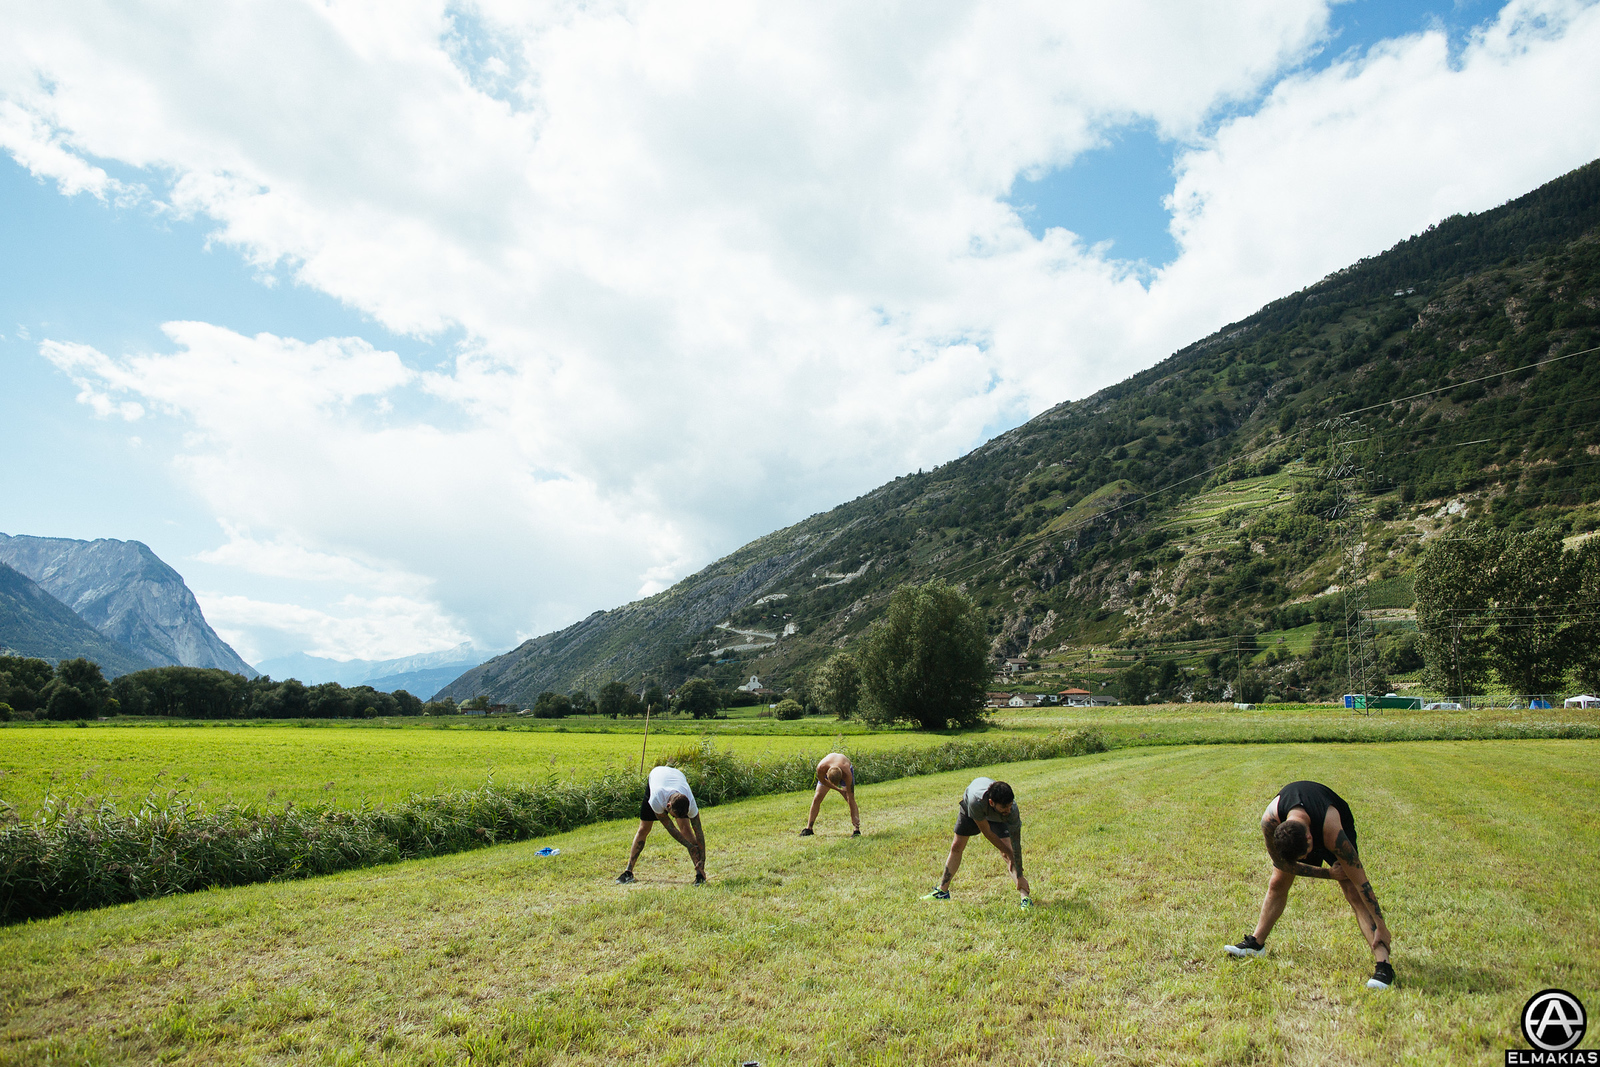 Insanity workout by the venue, in the Swiss Alps